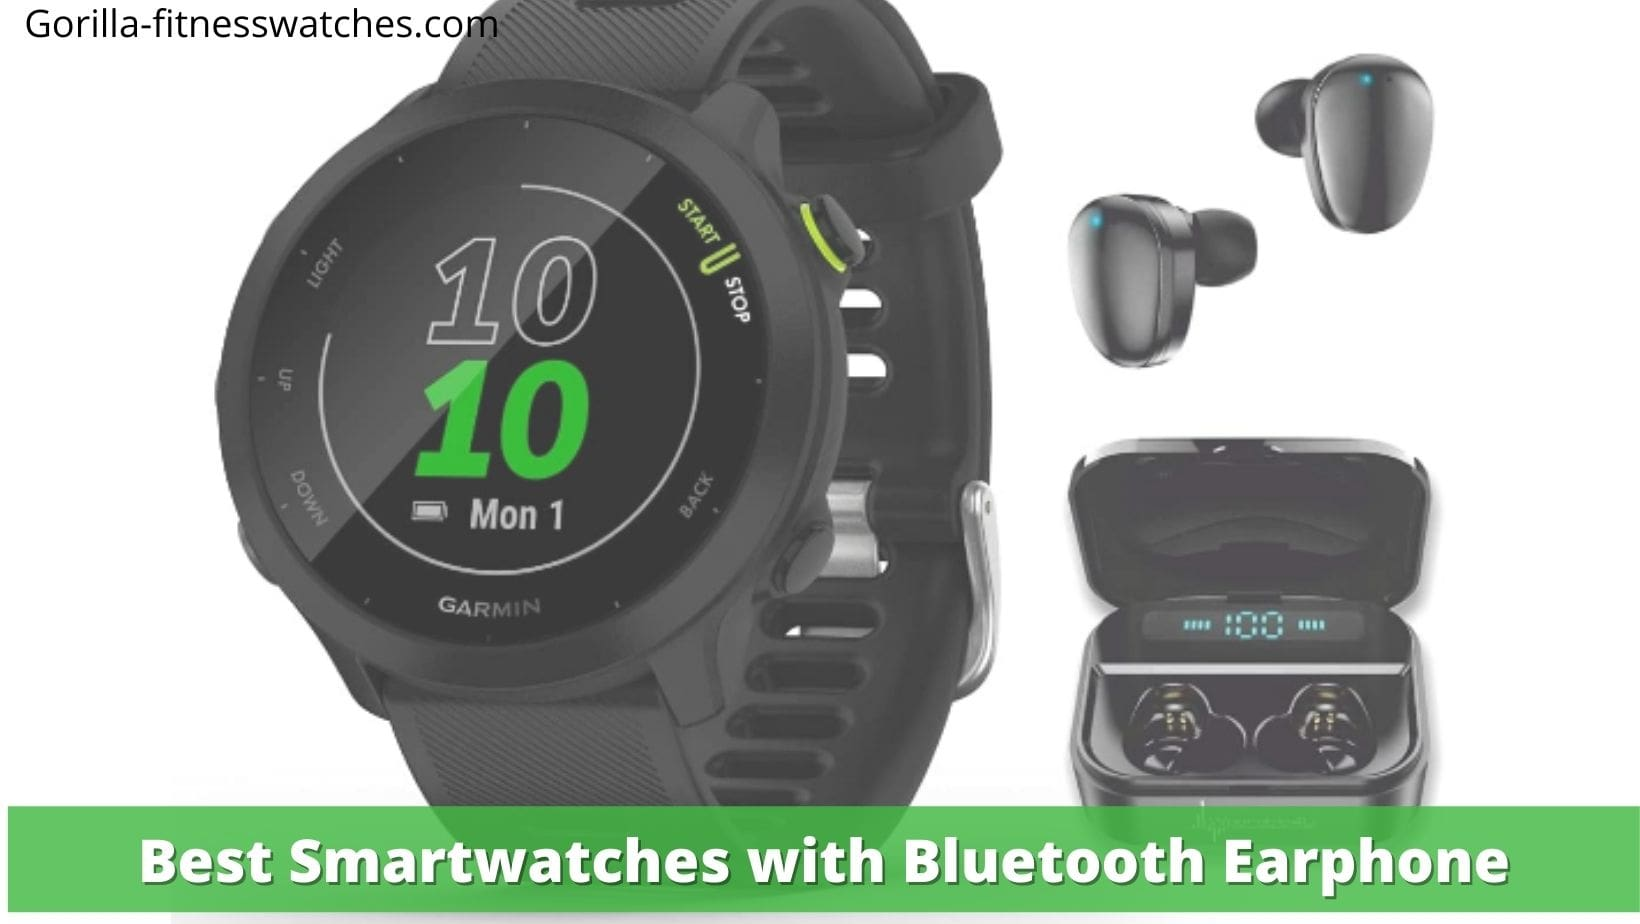 Best Smartwatches with Bluetooth Earphone